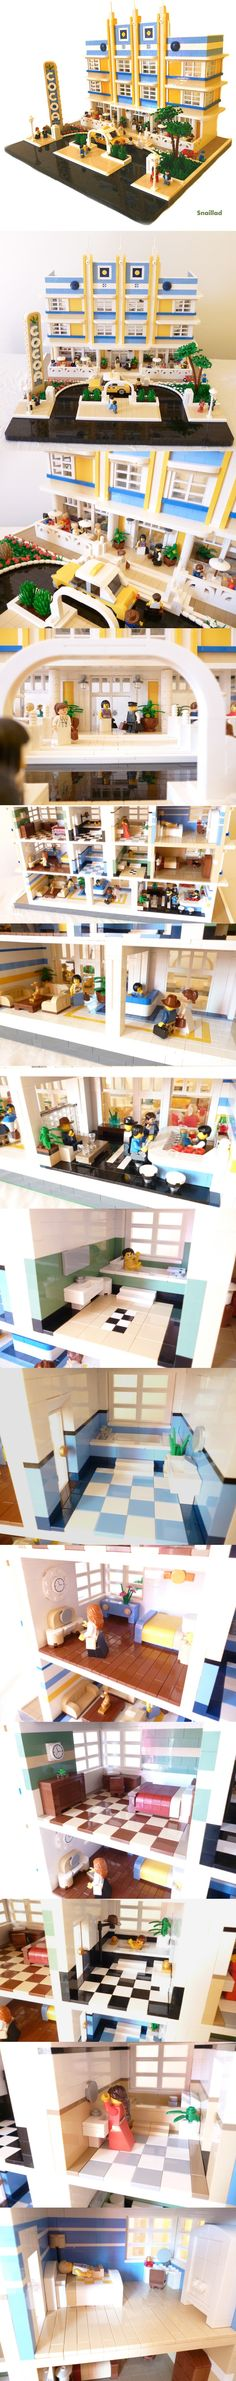 The Cocoa Hotel #LEGO #building #hotel